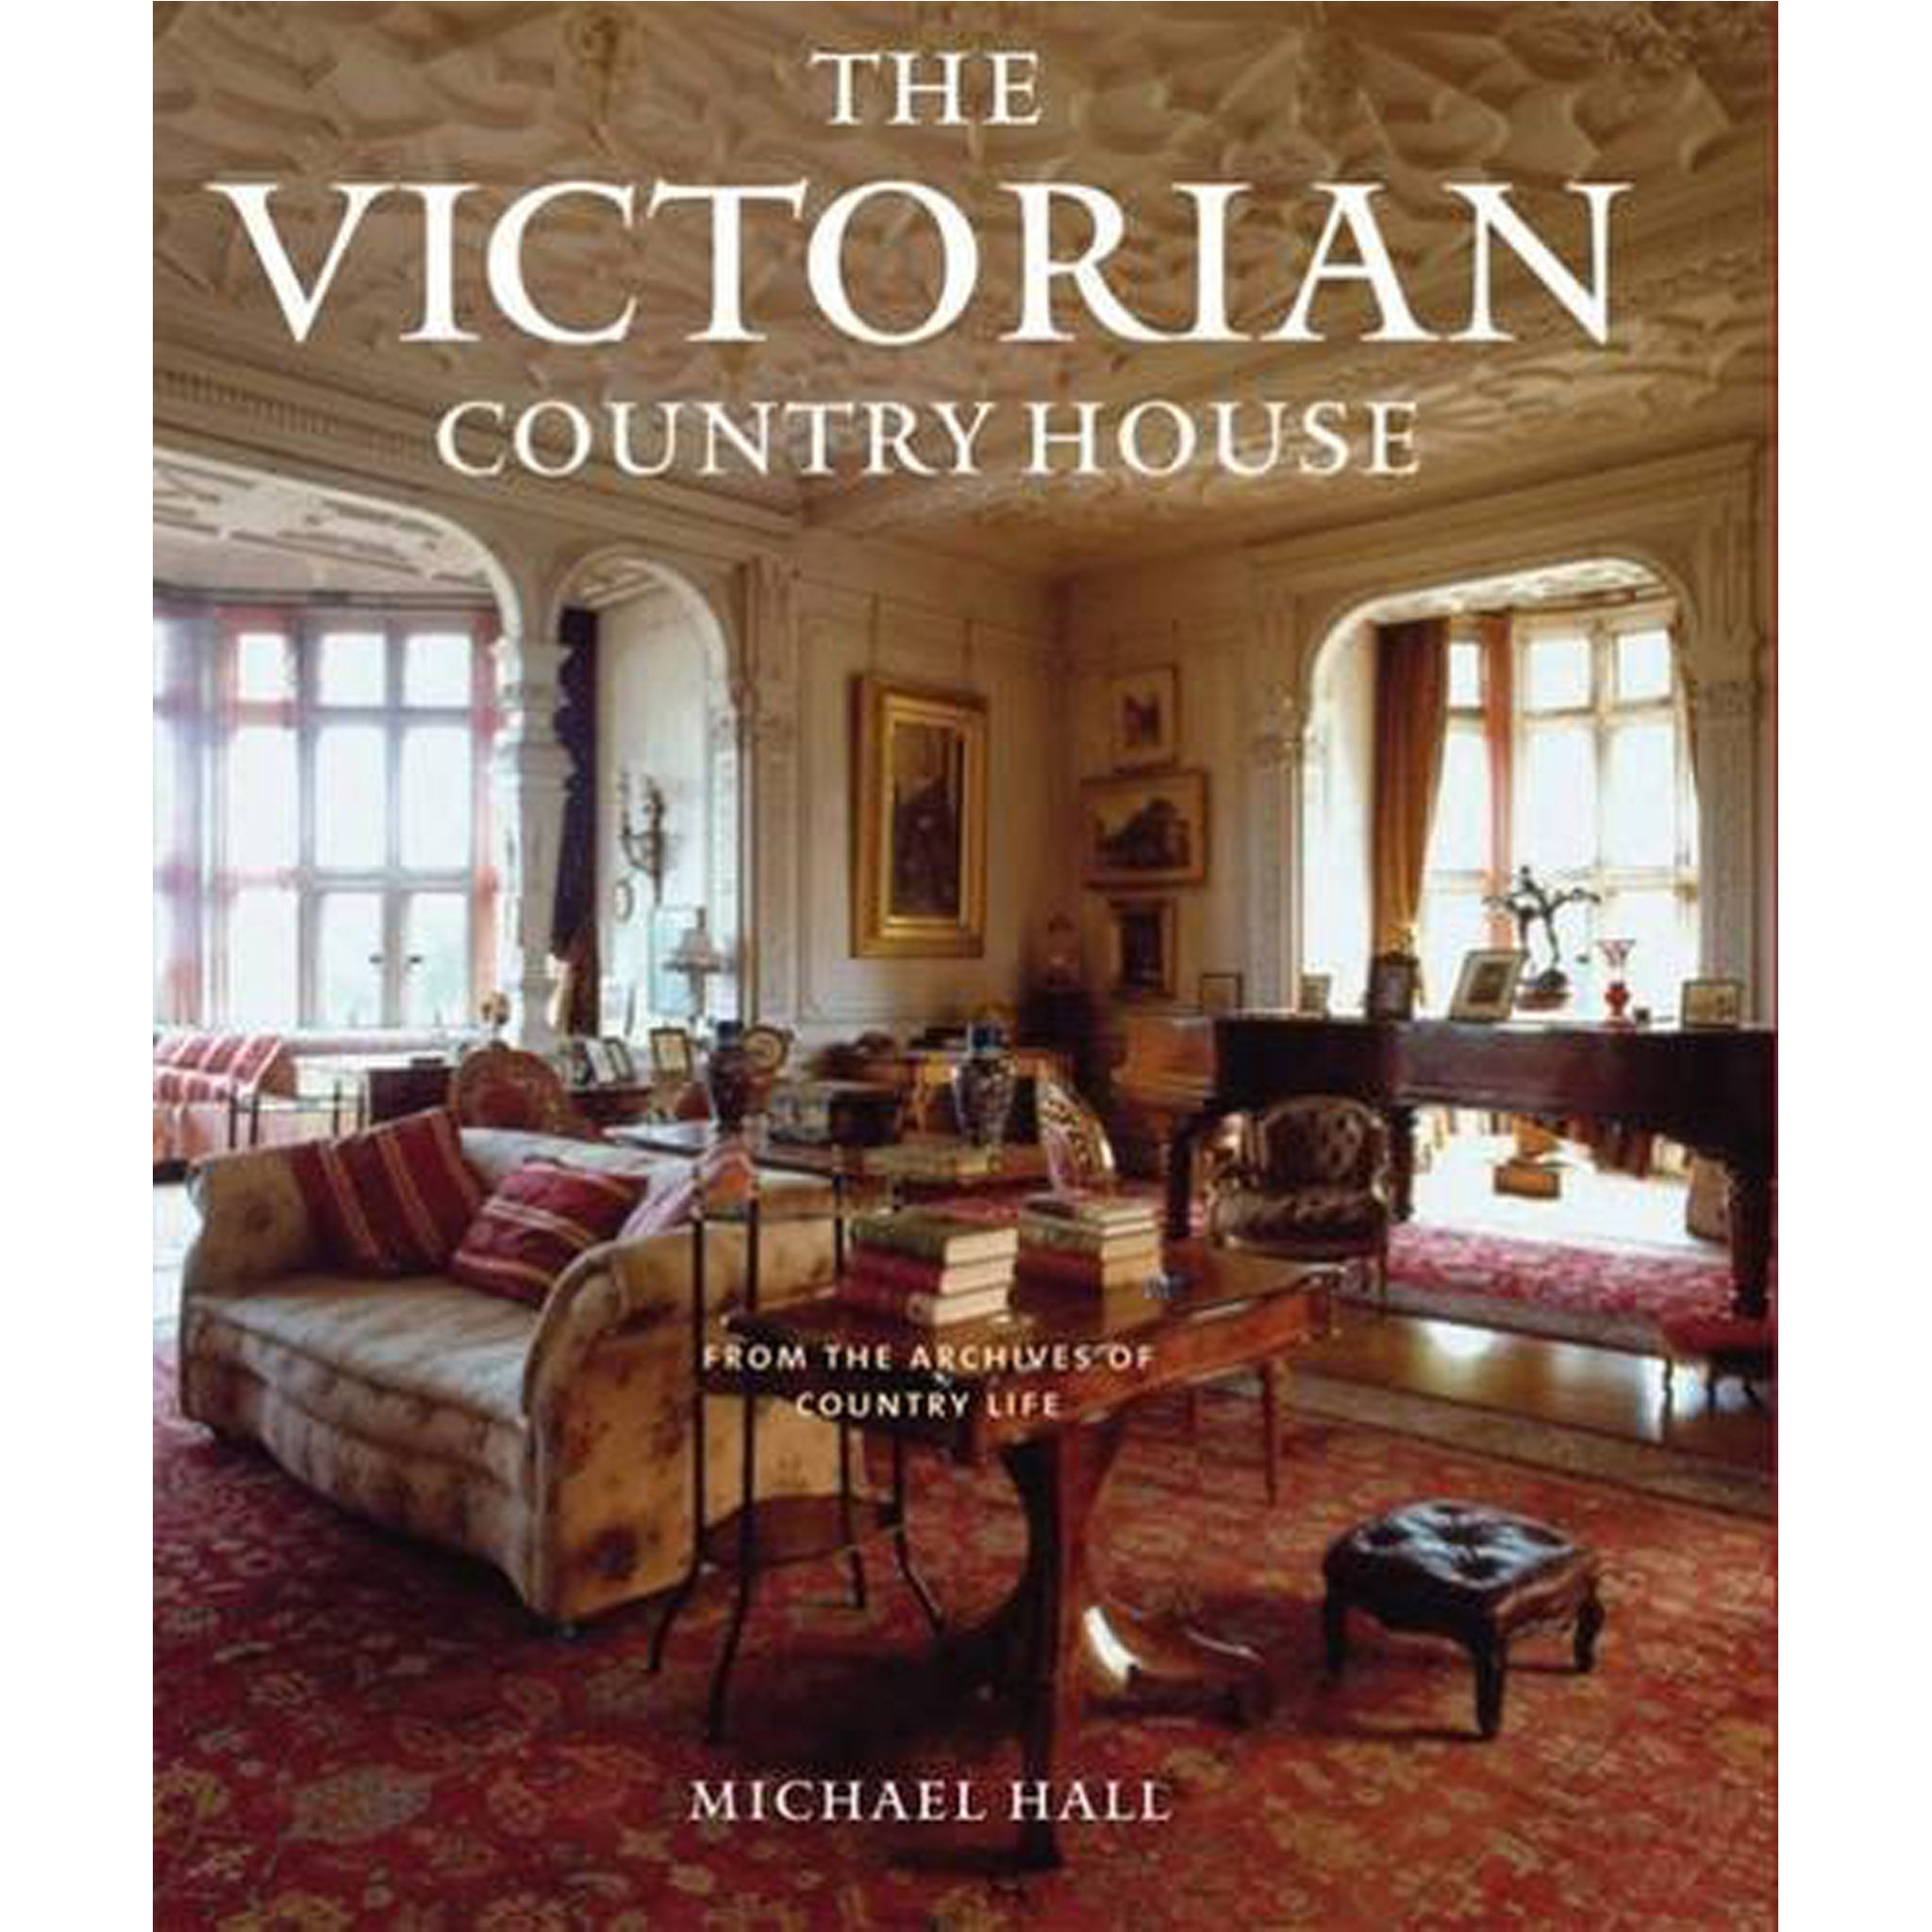 The Victorian Country House